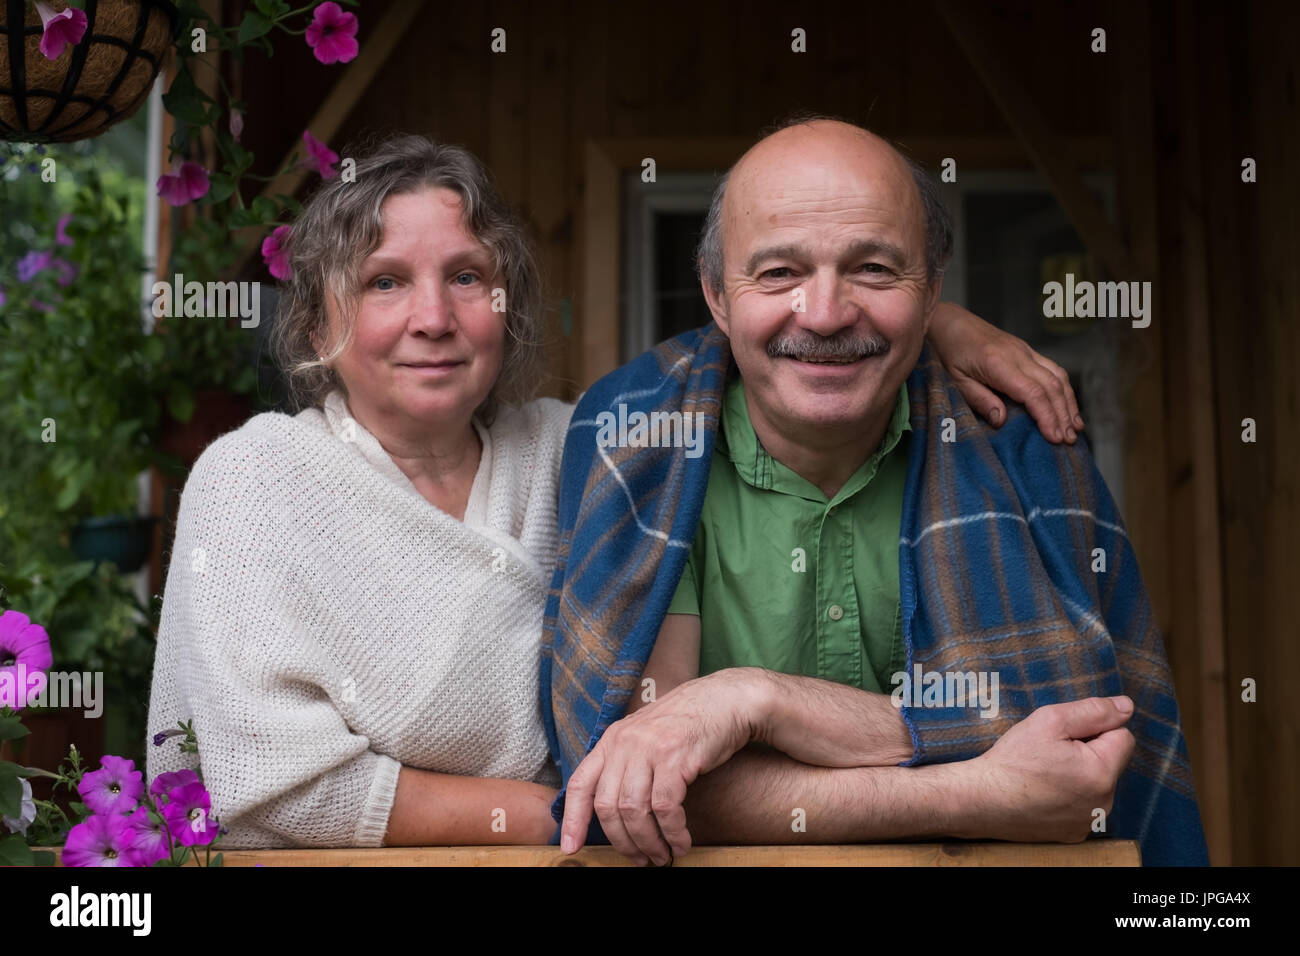 Cheerful senior couple enjoying life at countryside house - Stock Image